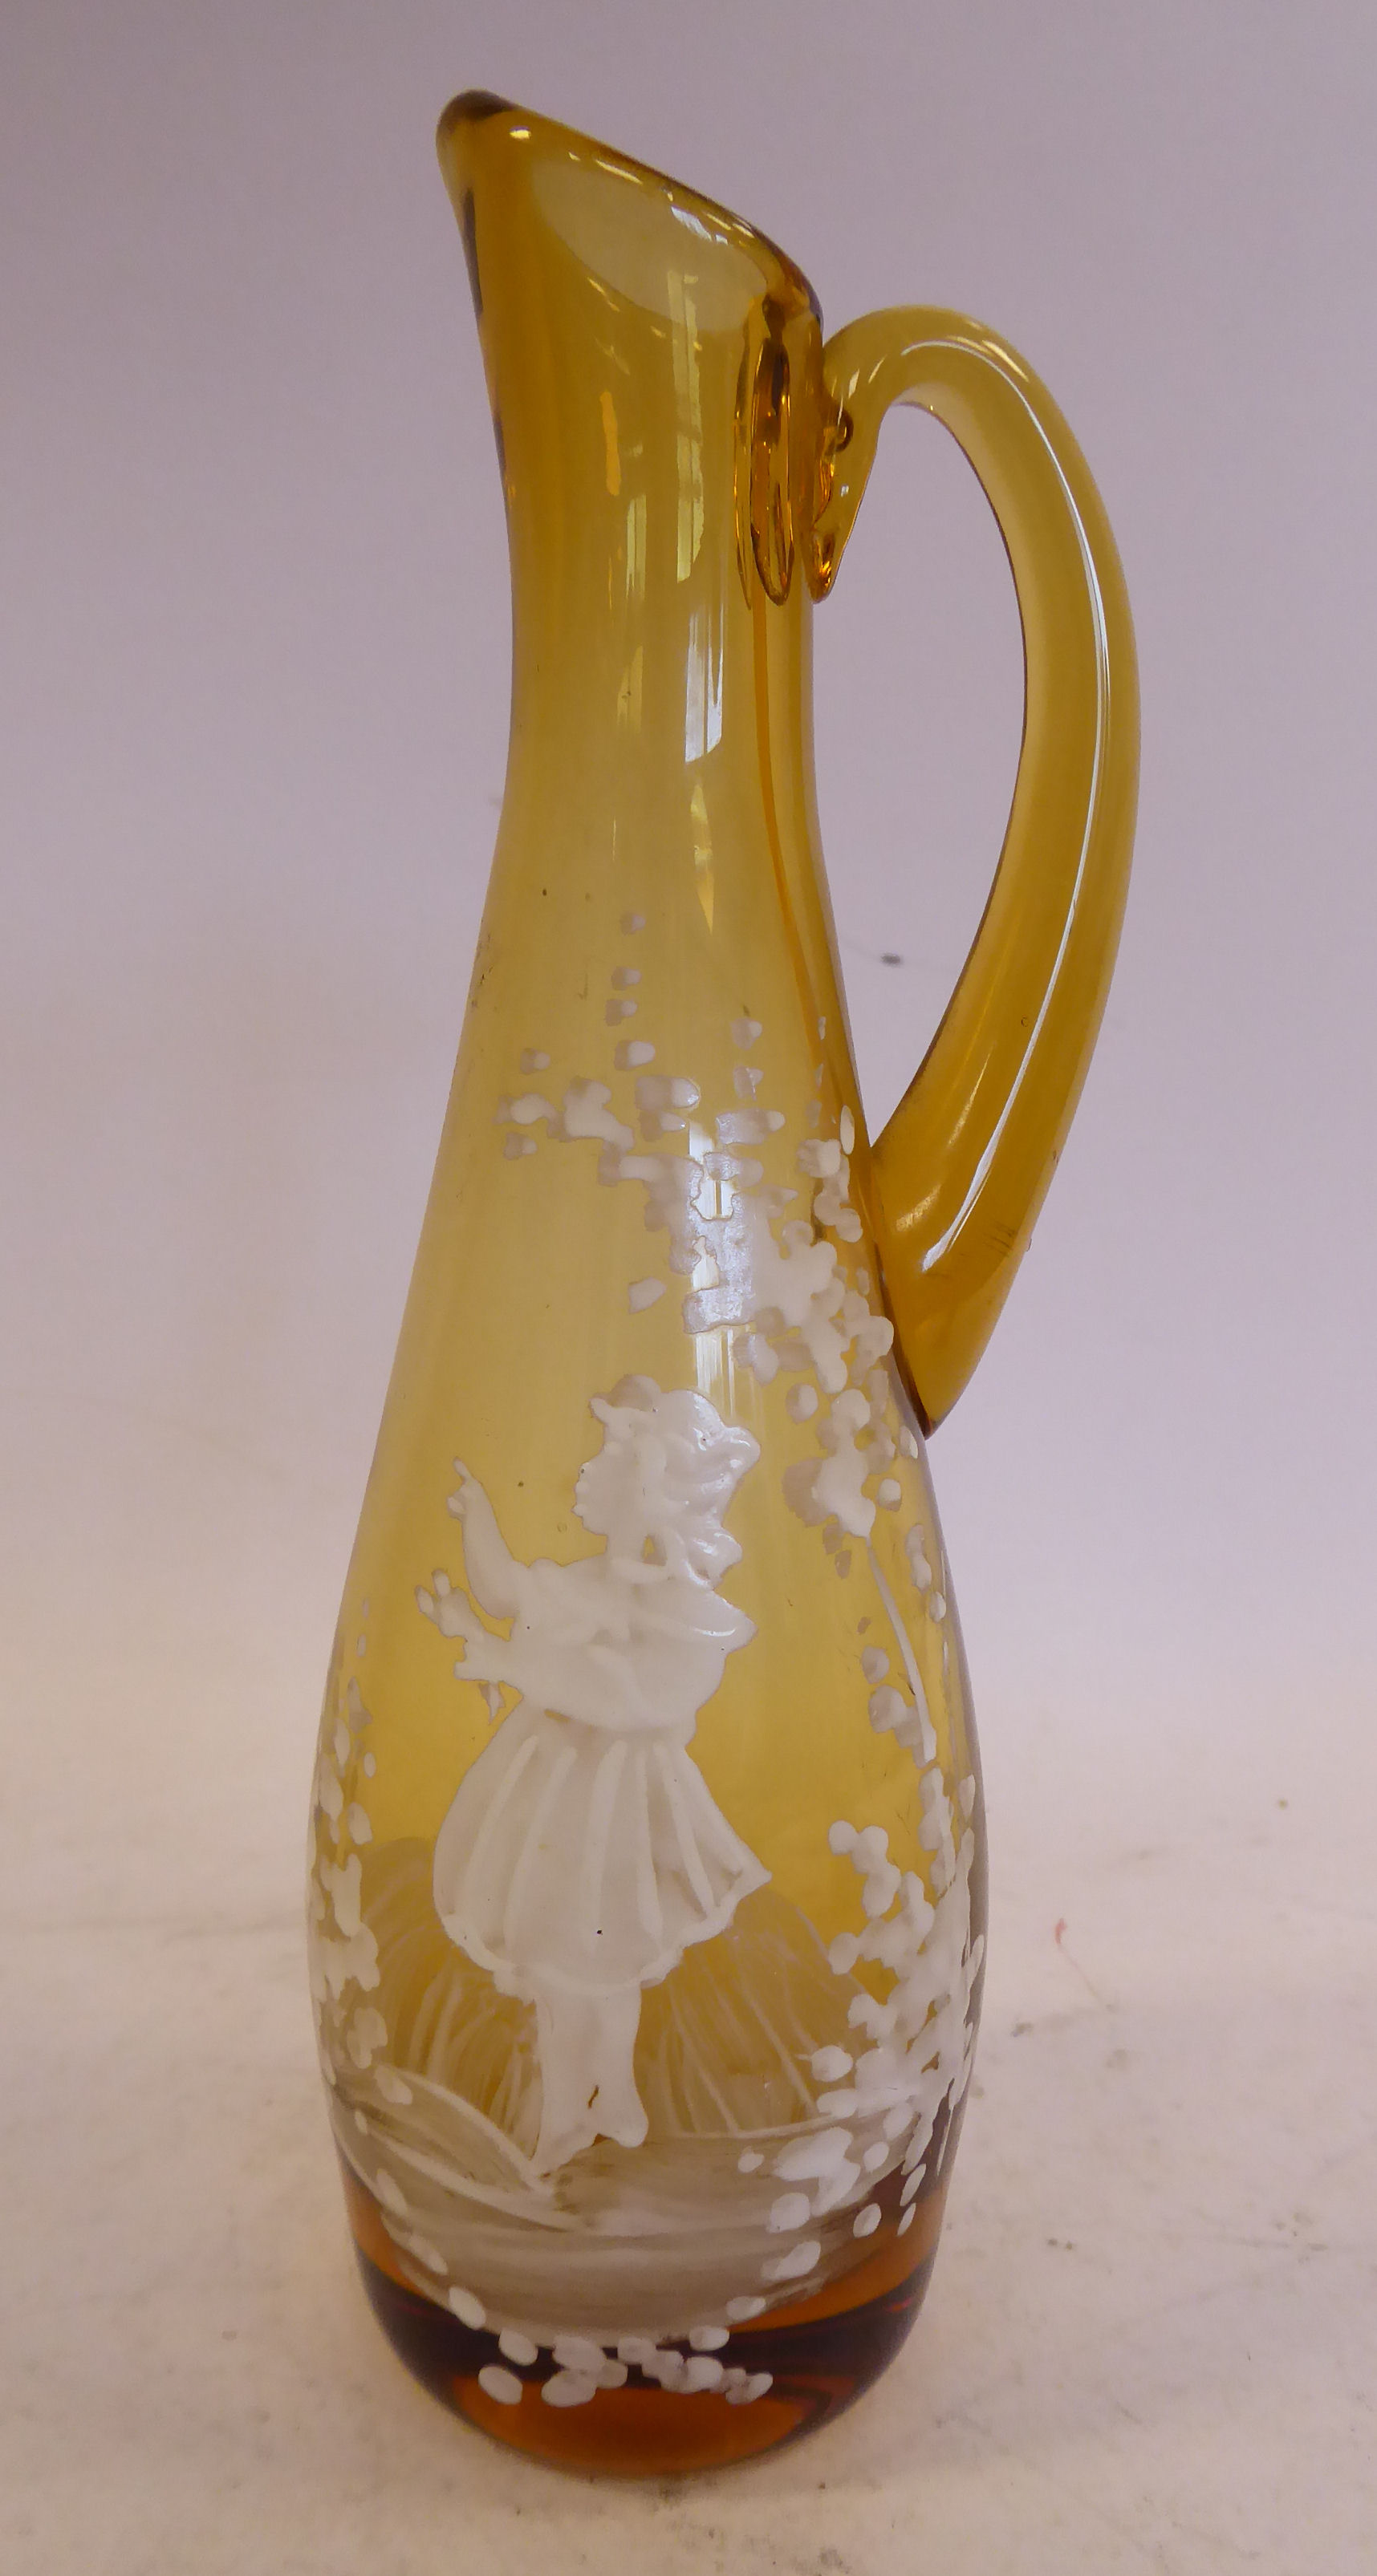 Lot 23 - In manner of Mary Gregory - a tined amber coloured glass jug of tapered form with a drawn loop